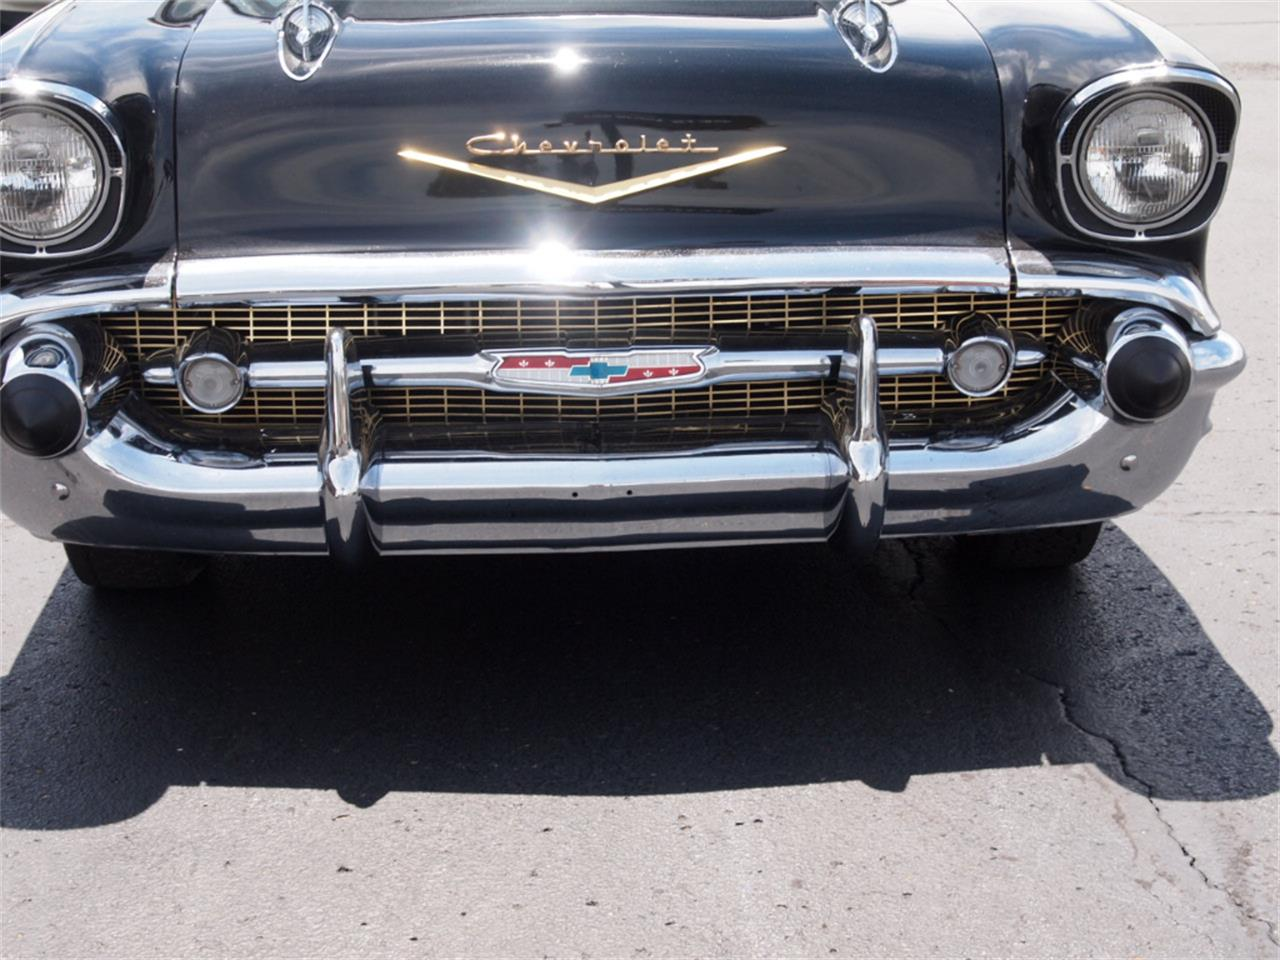 1957 Chevrolet Bel Air for sale in North Canton, OH – photo 29